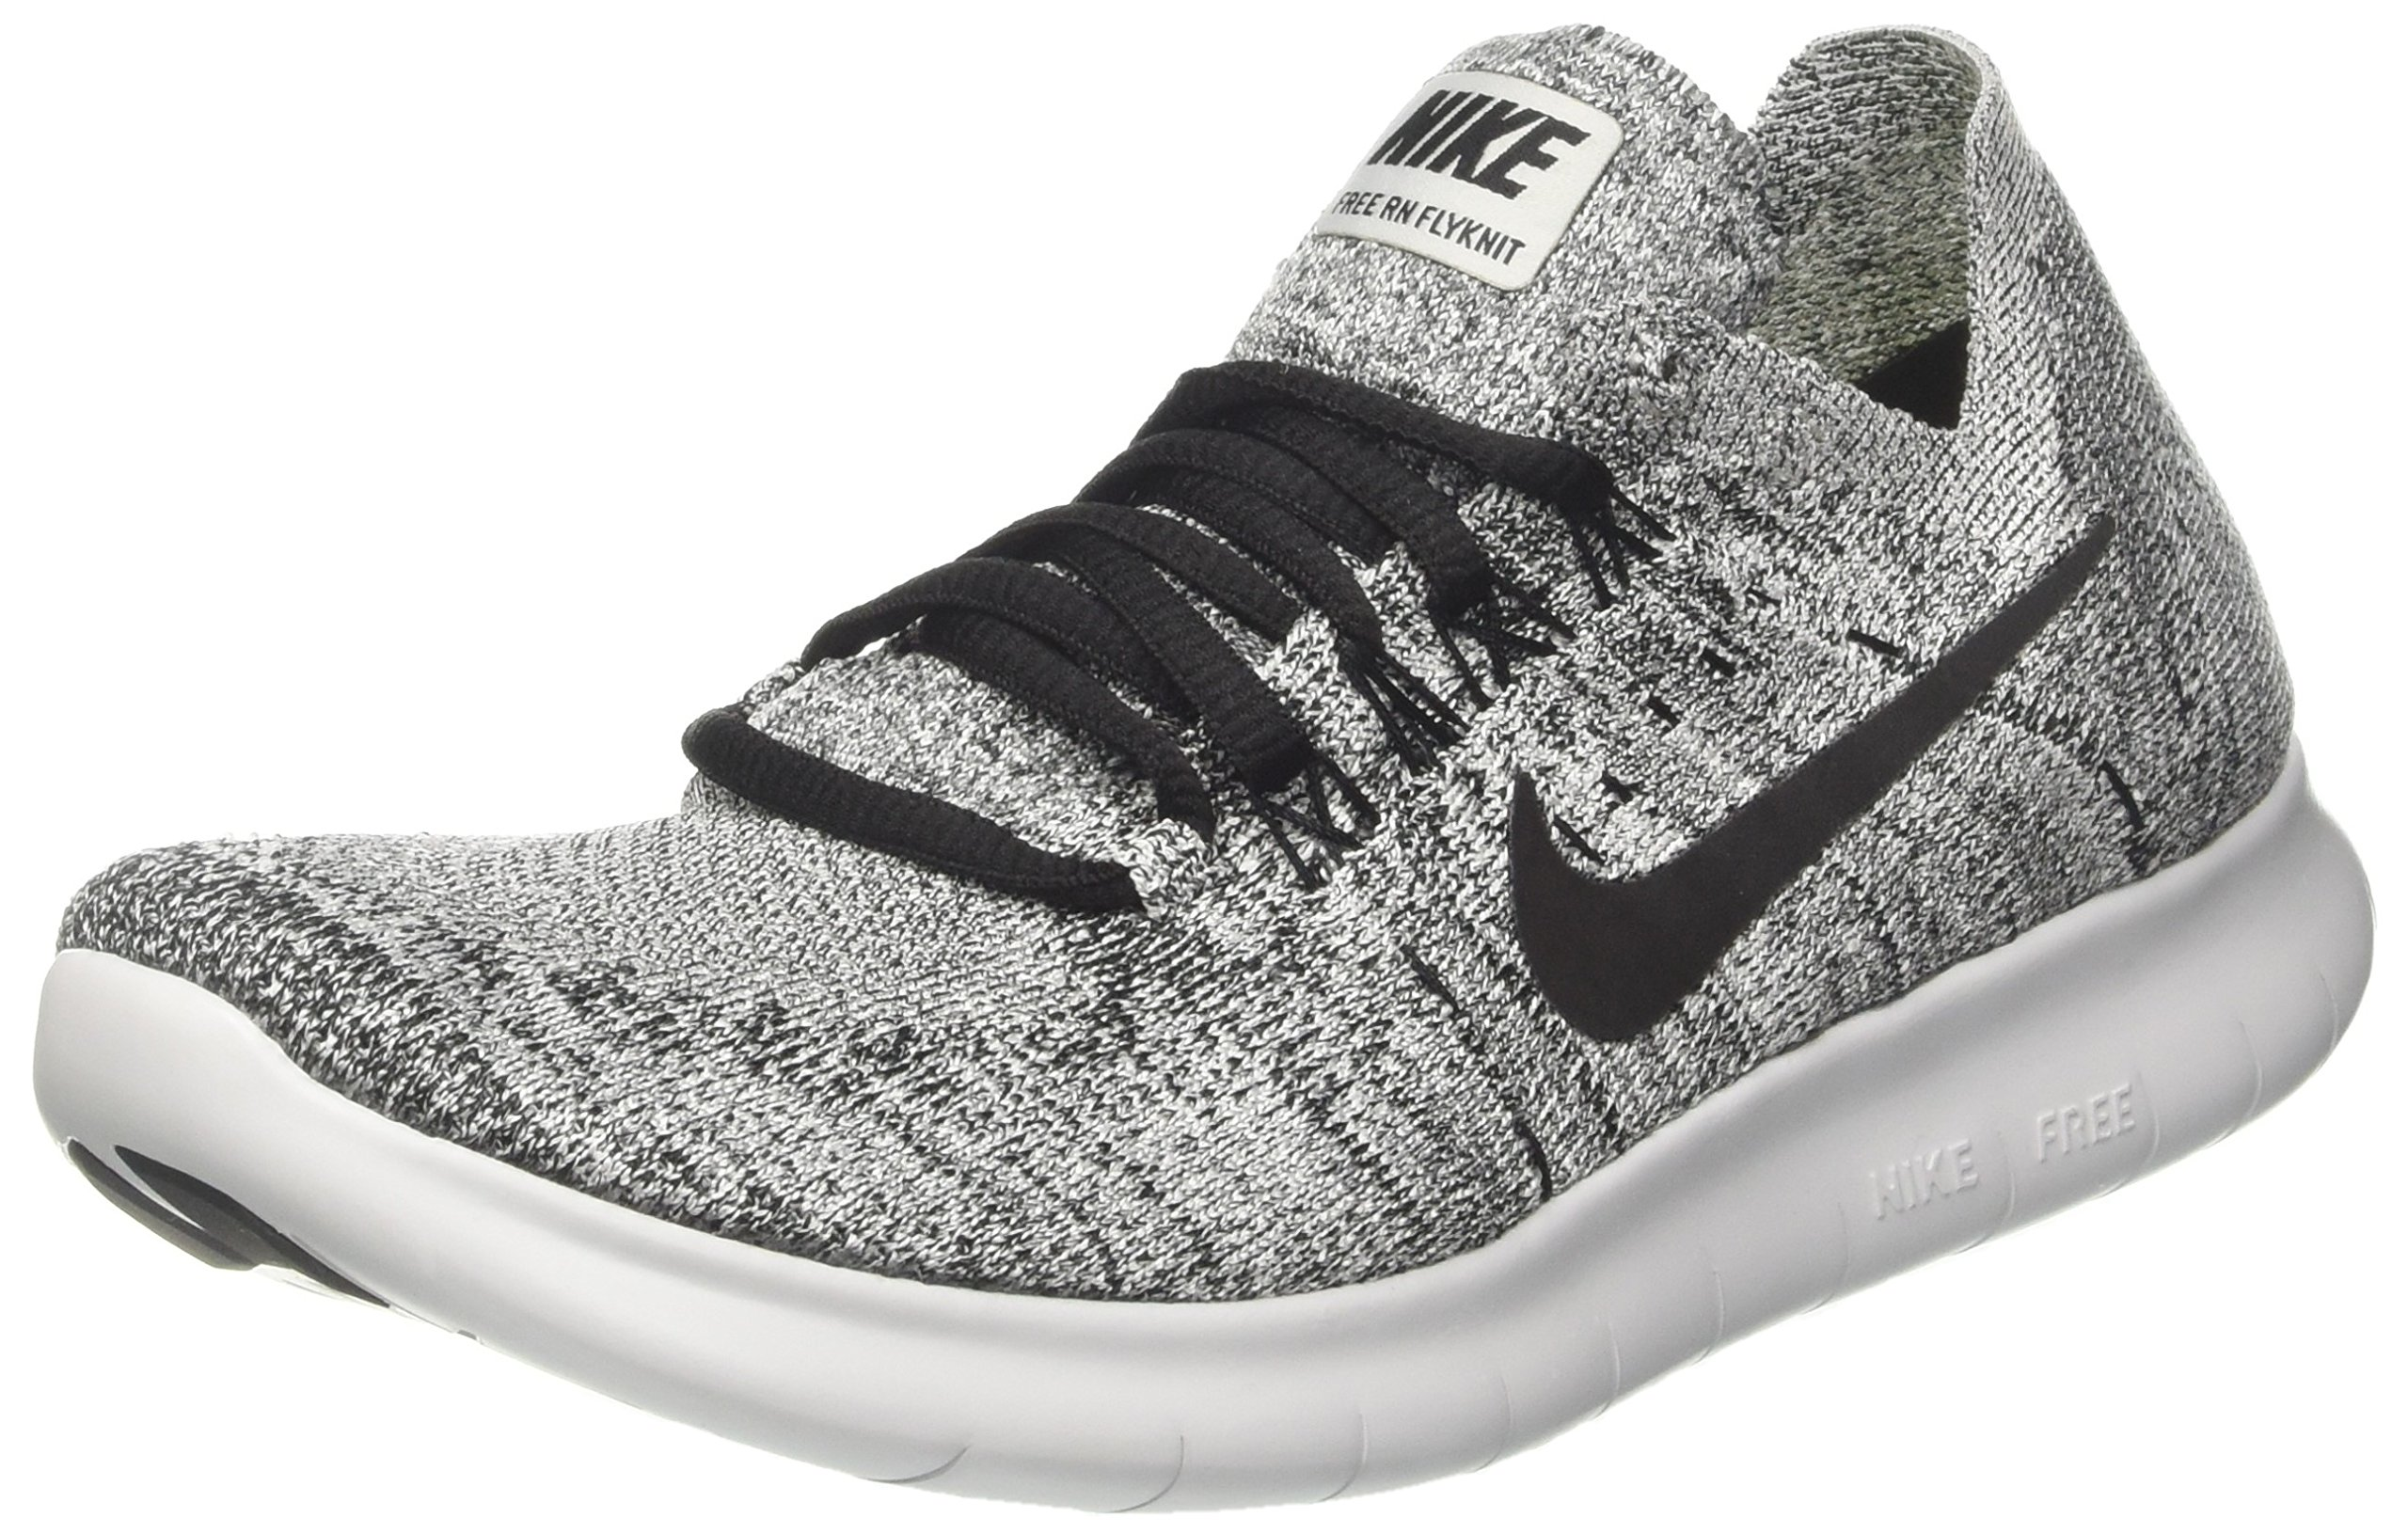 a53ce6af9e27 Galleon - Nike Free RN Flyknit 2017 Womens Running Shoes (8 B(M) US)